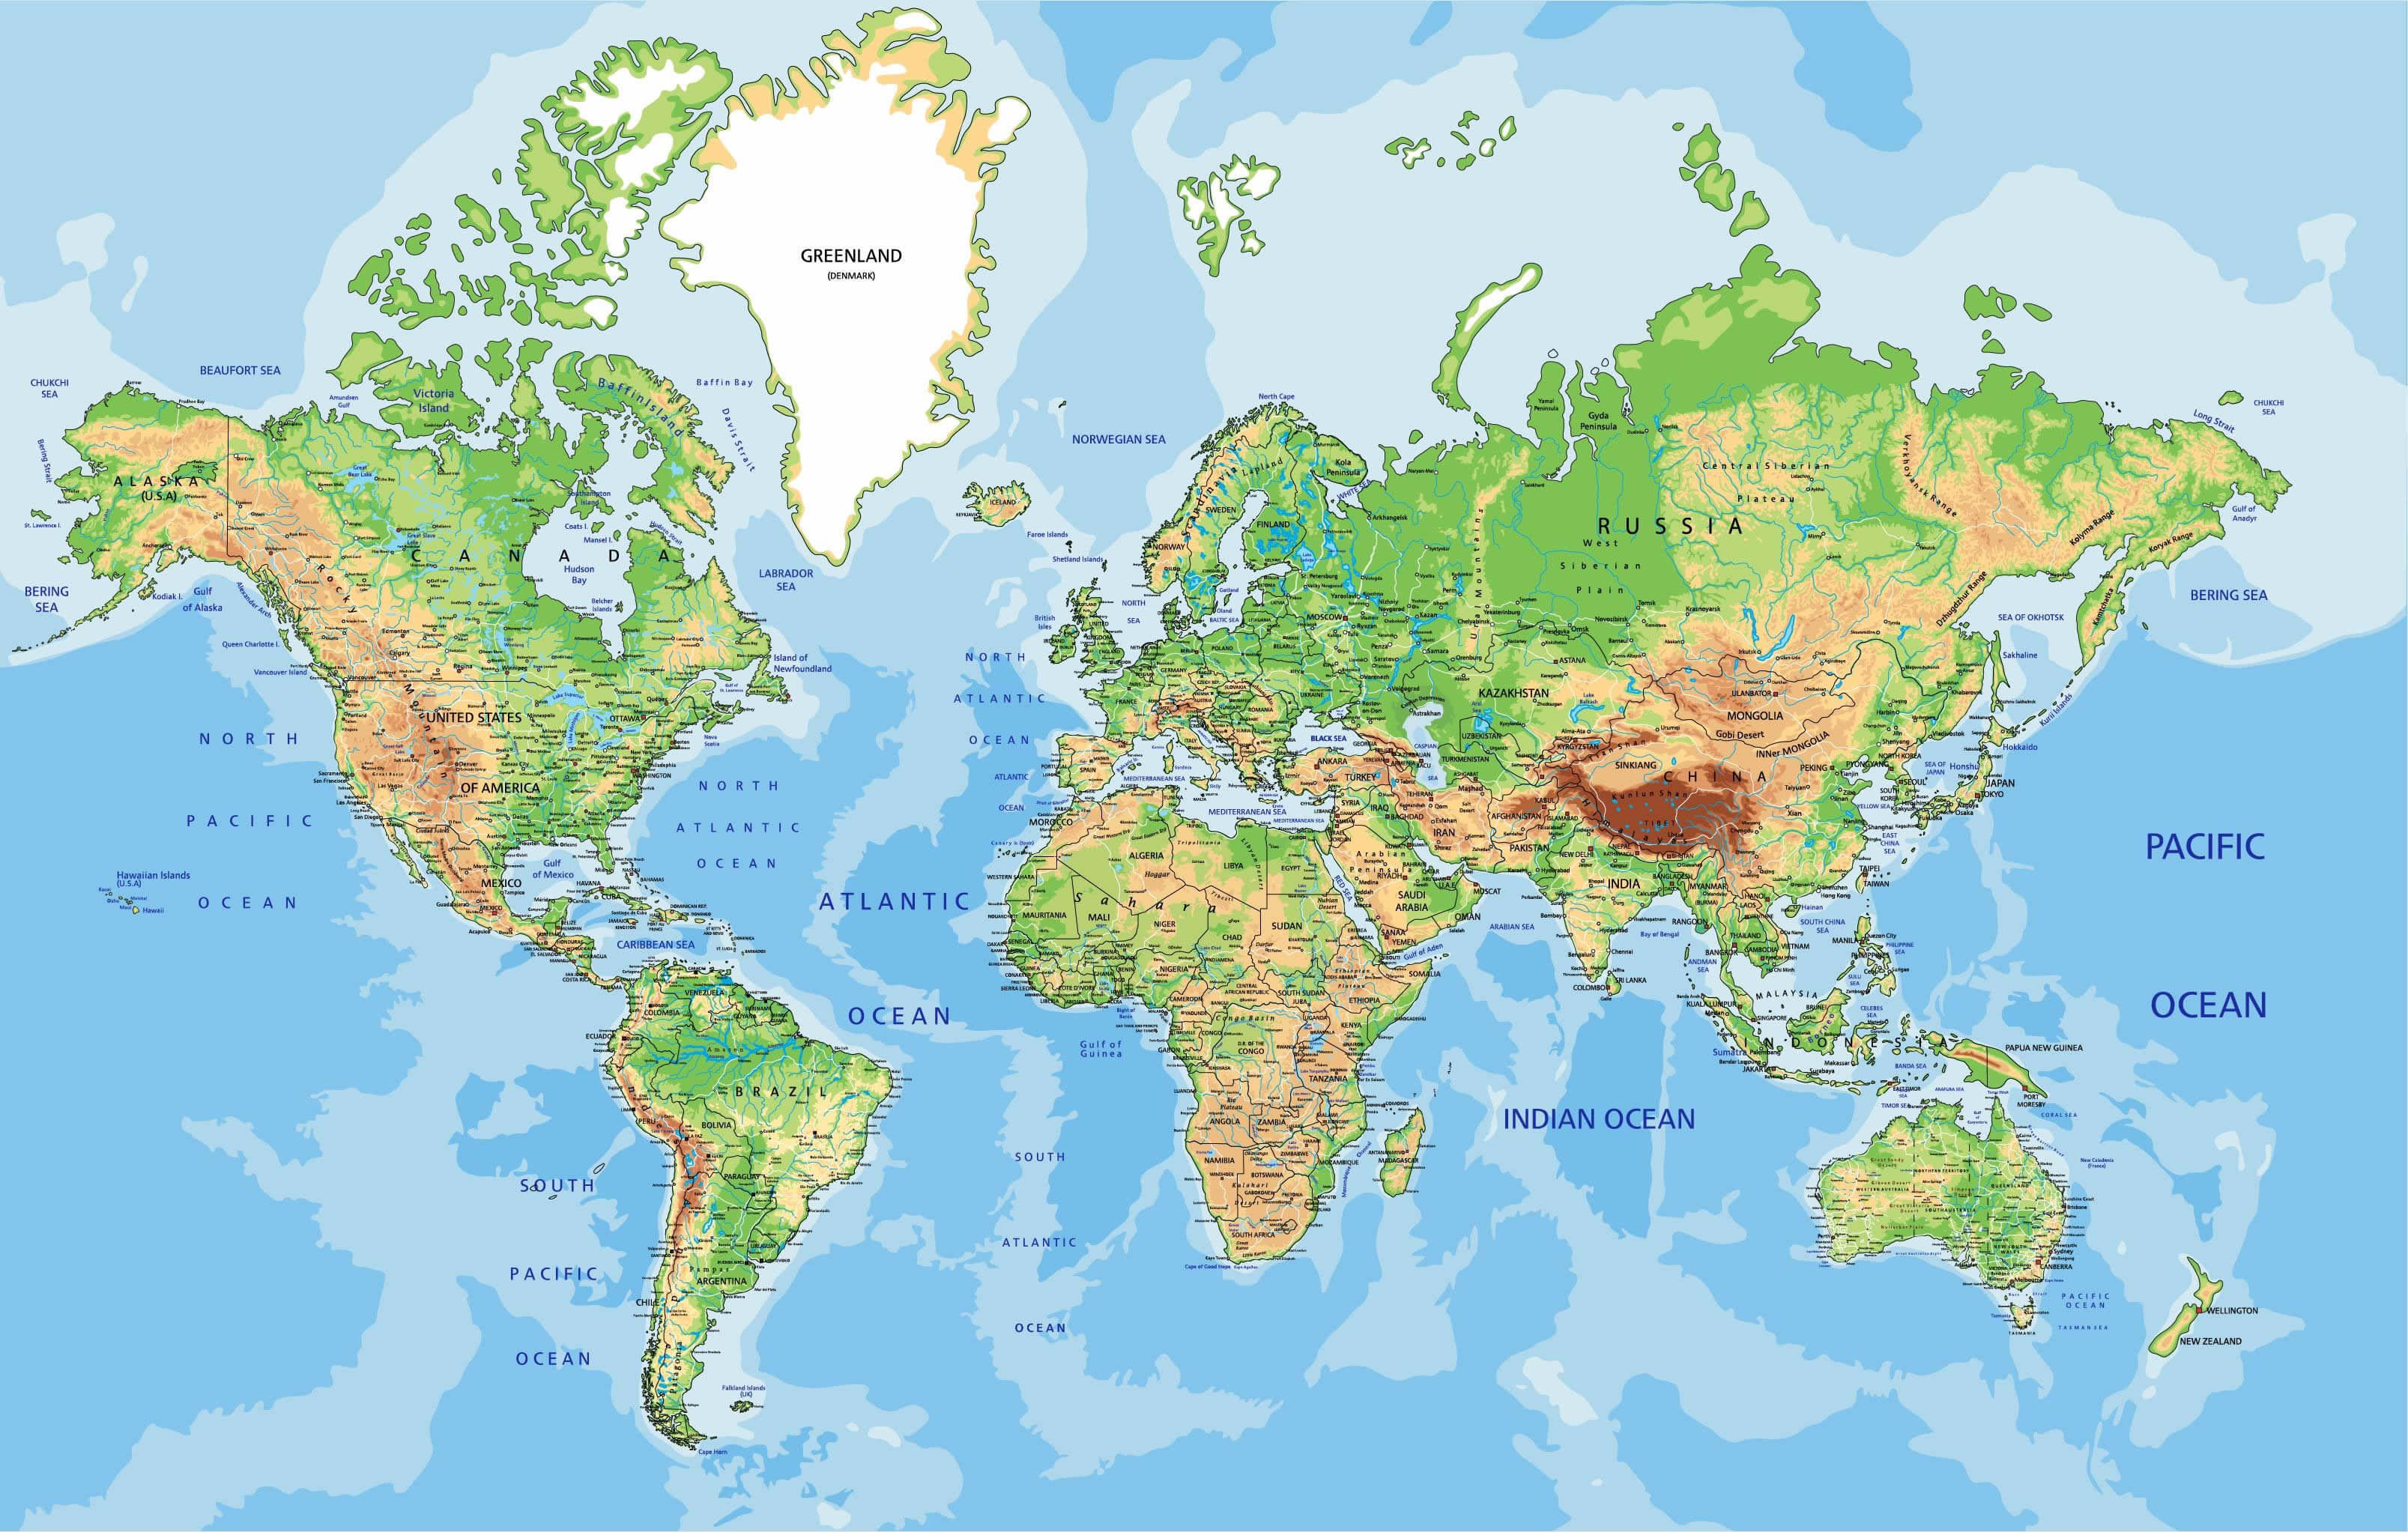 Map of World - Guide of the World